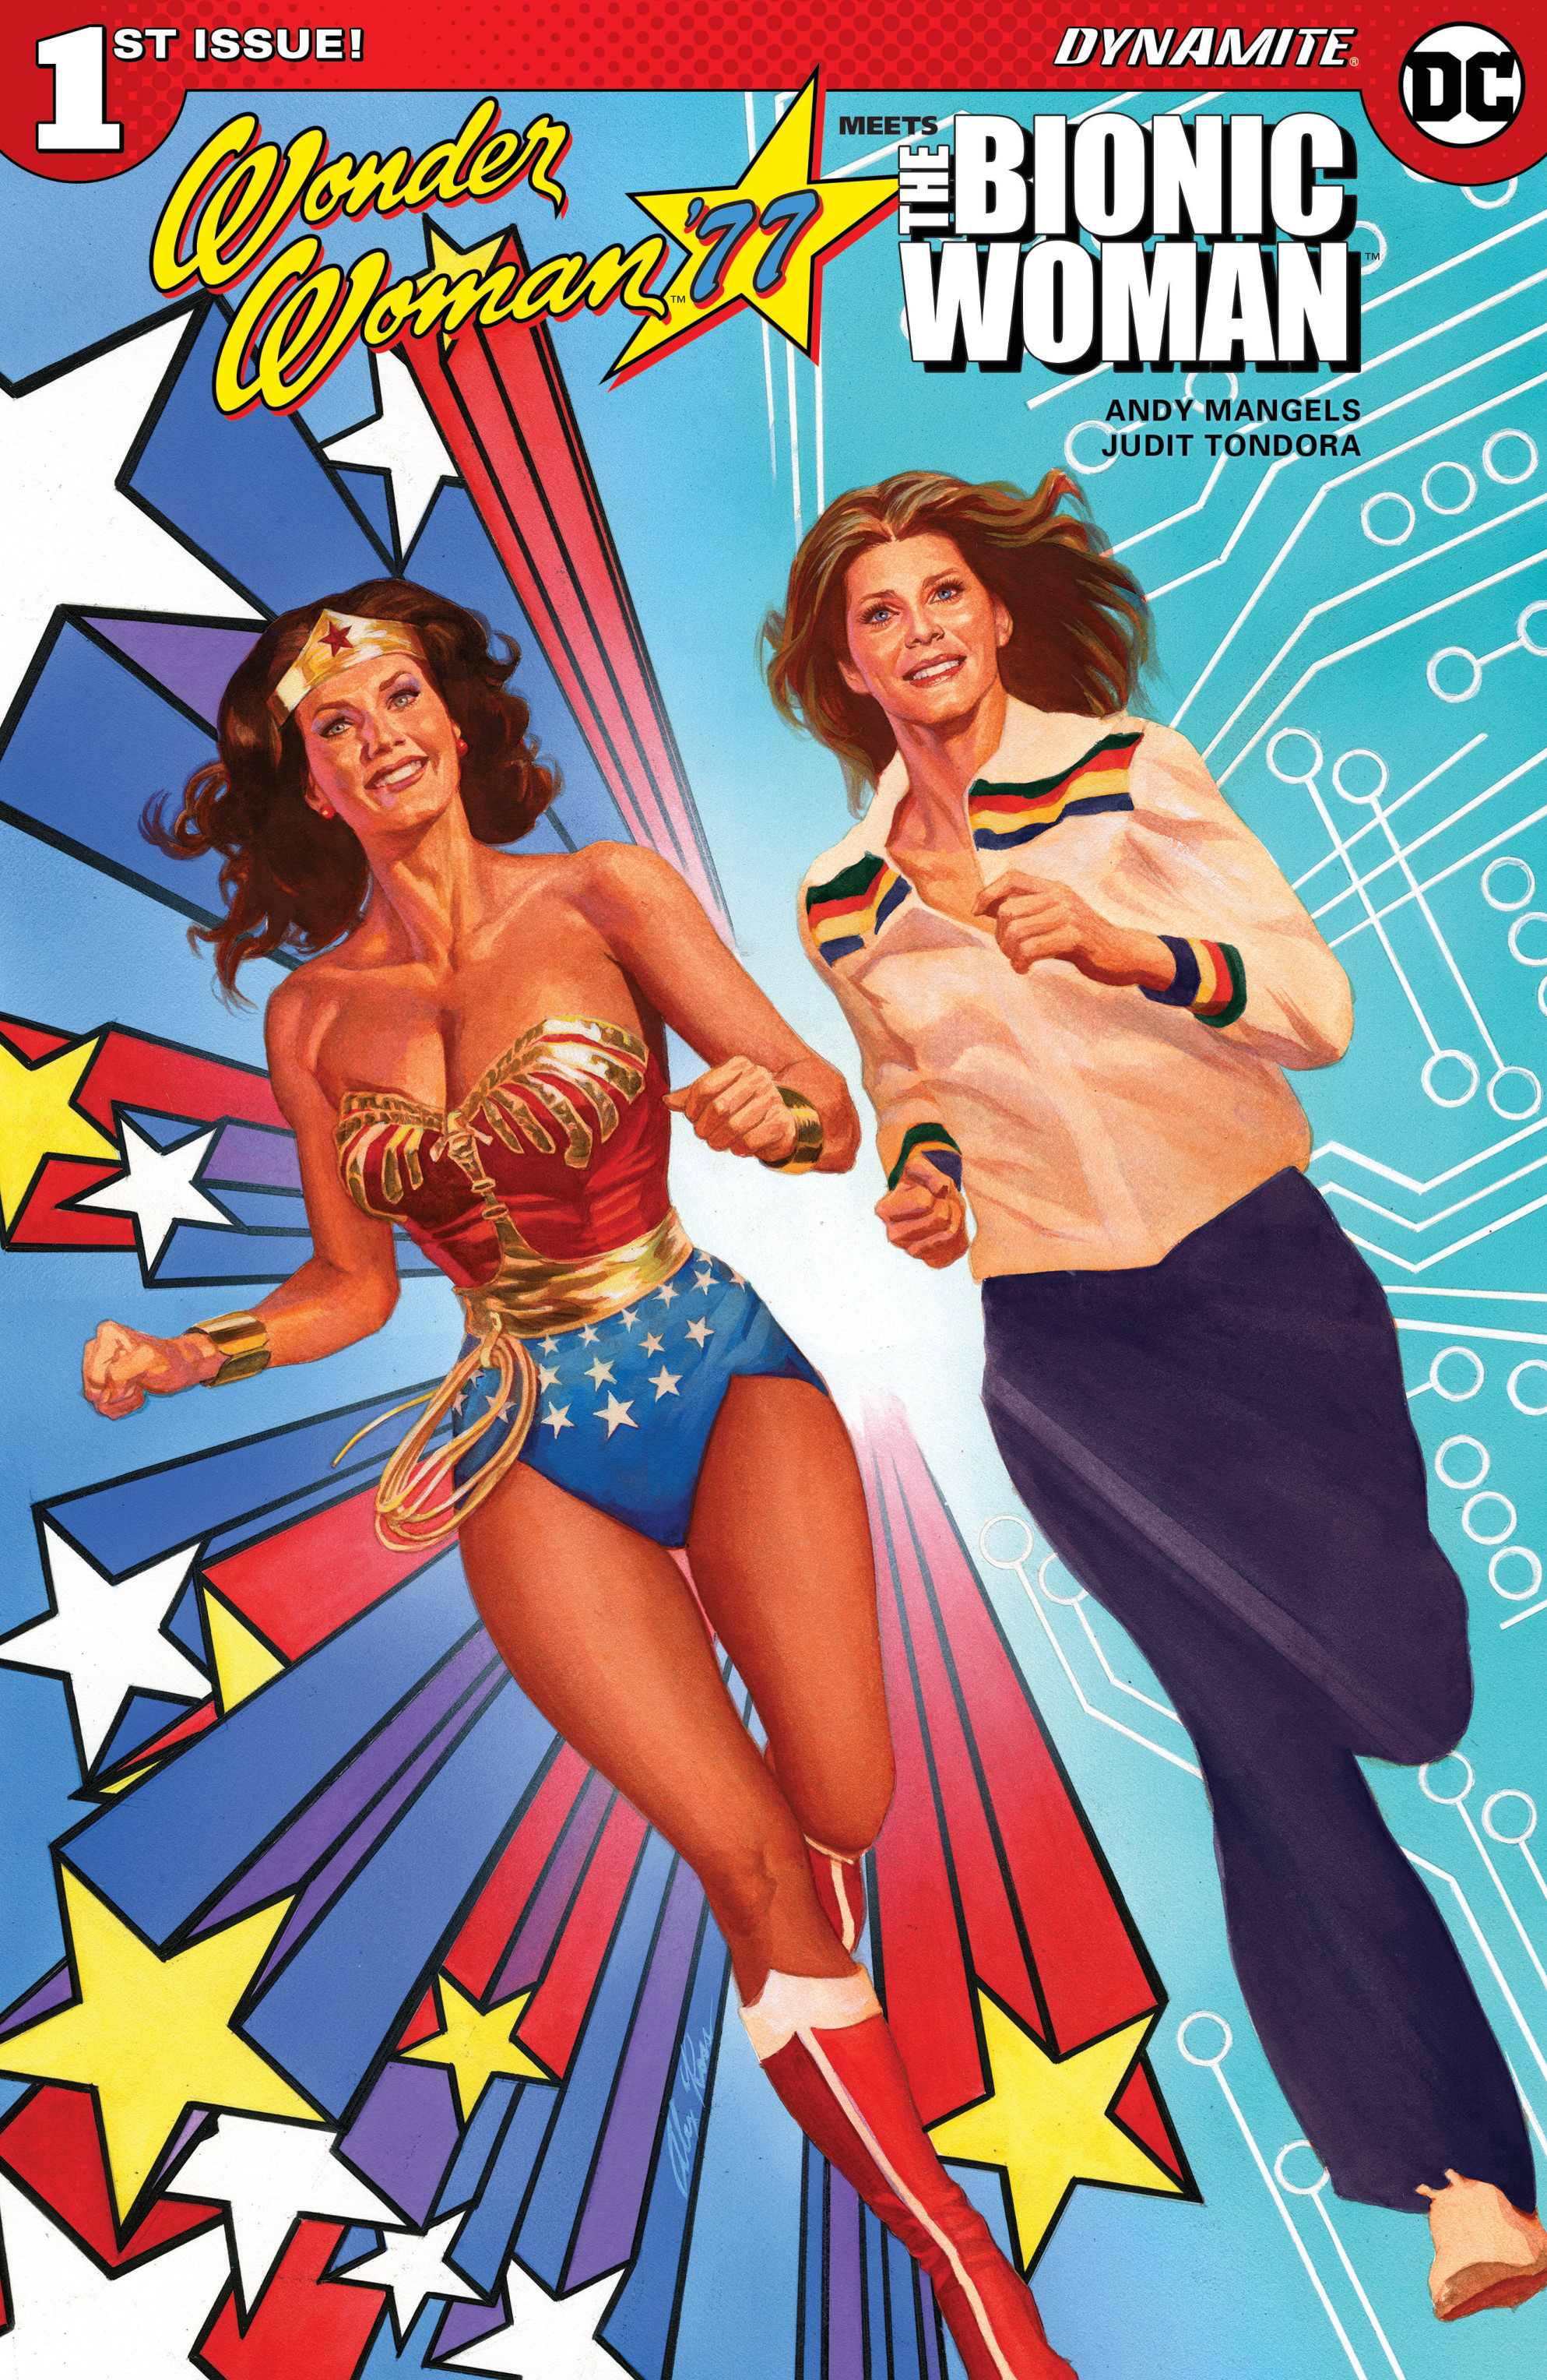 Read online Wonder Woman '77 Meets The Bionic Woman comic -  Issue #1 - 2